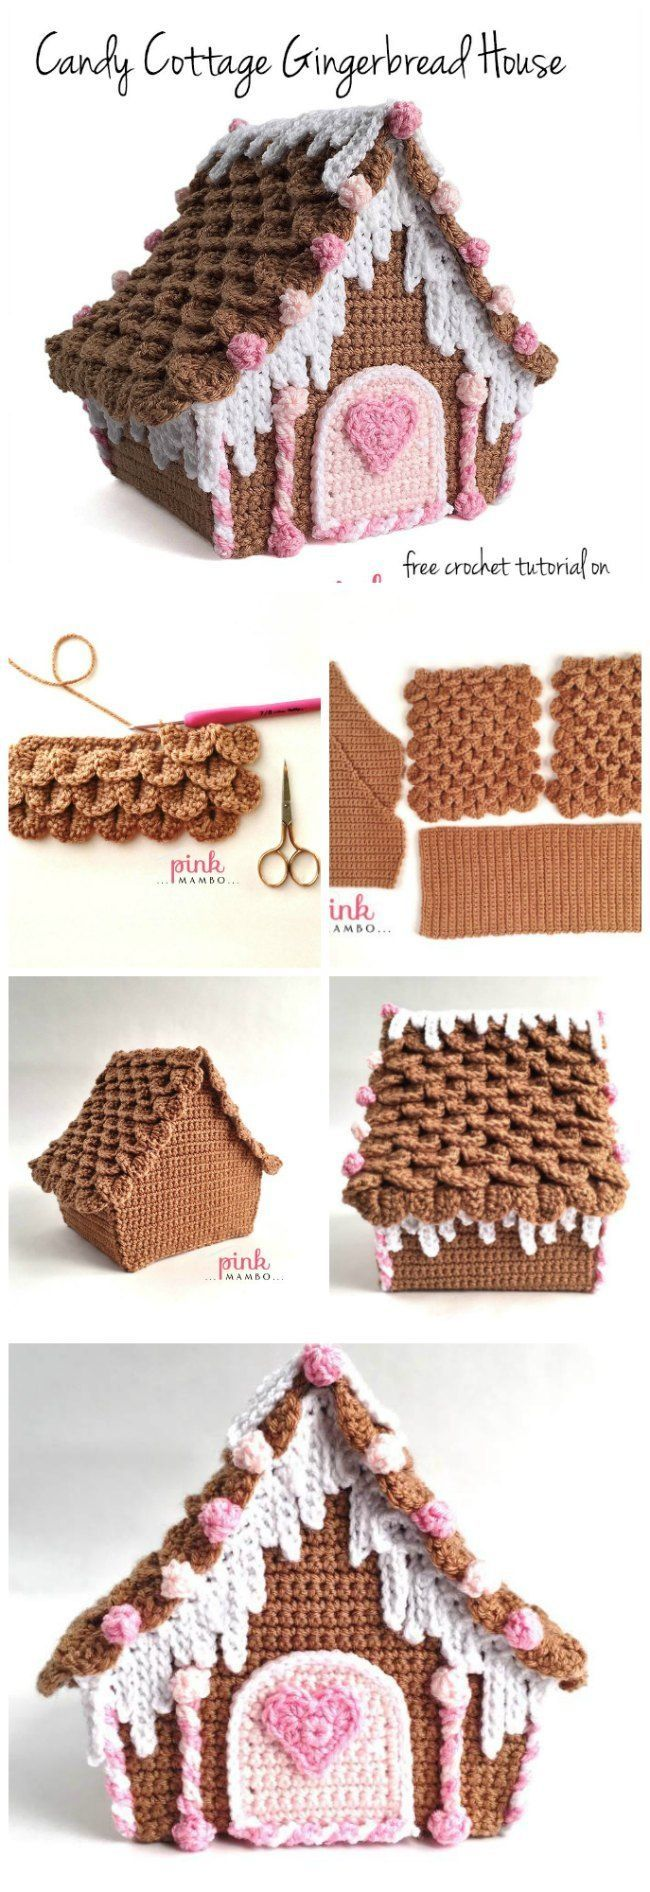 Free crochet pattern for a Candy Covered Gingerbread House. Won't add to you